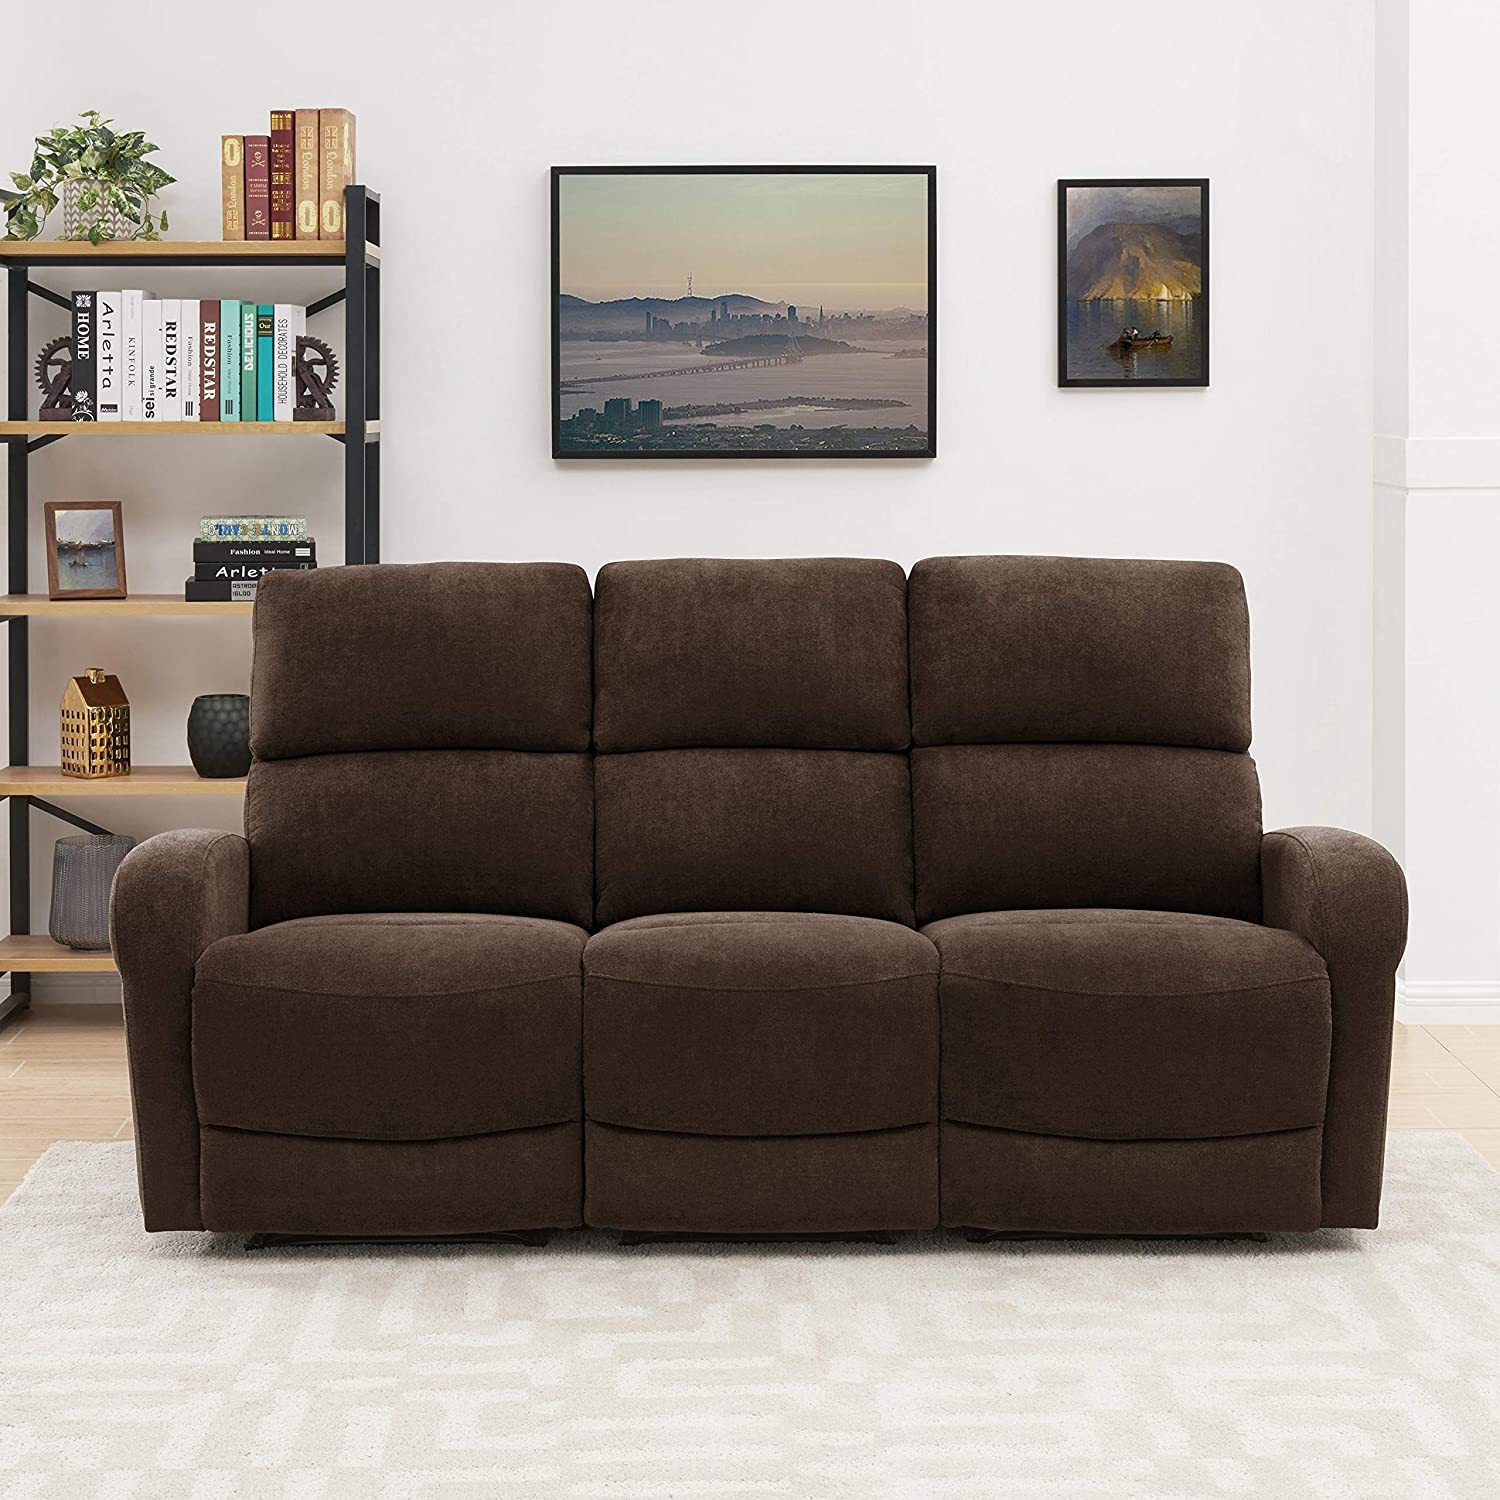 Brown Max 40% OFF Chenille 3-seat Recliner Sofa outlet Solid Modern Tr Contemporary